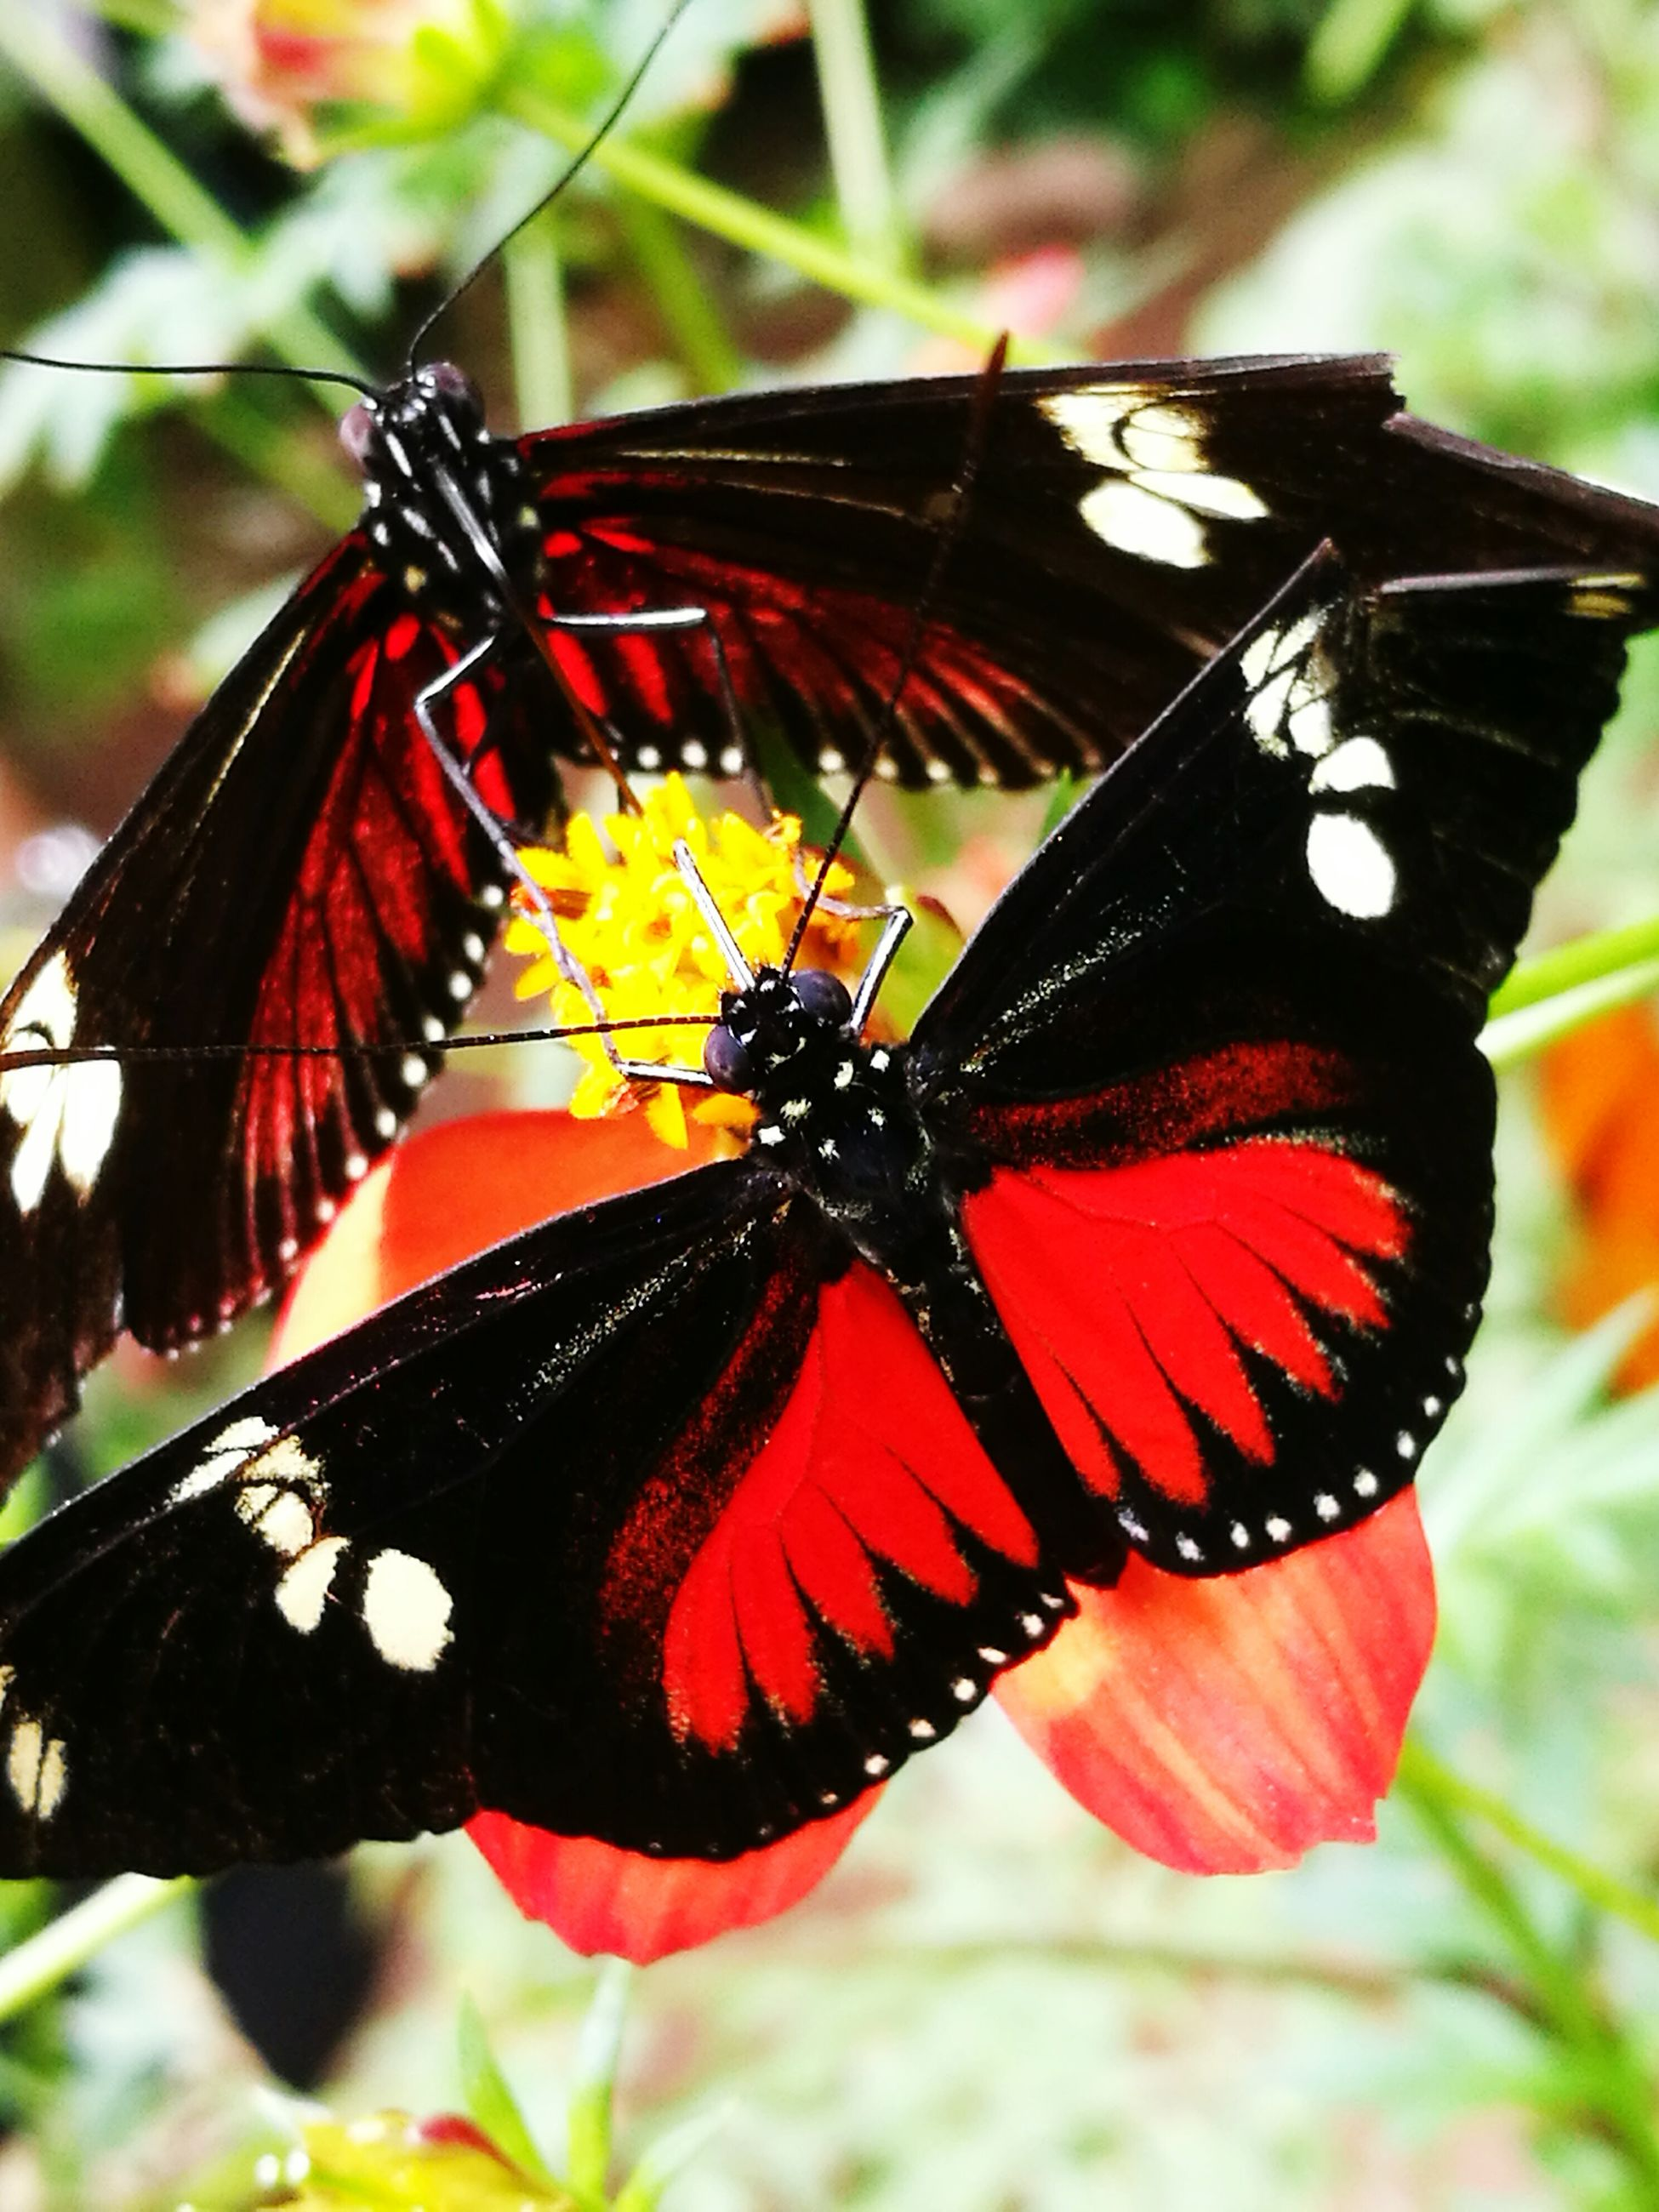 butterfly - insect, insect, animal themes, one animal, animals in the wild, close-up, fragility, butterfly, plant, wildlife, nature, beauty in nature, animal wildlife, red, flower, animal markings, outdoors, day, no people, pollination, freshness